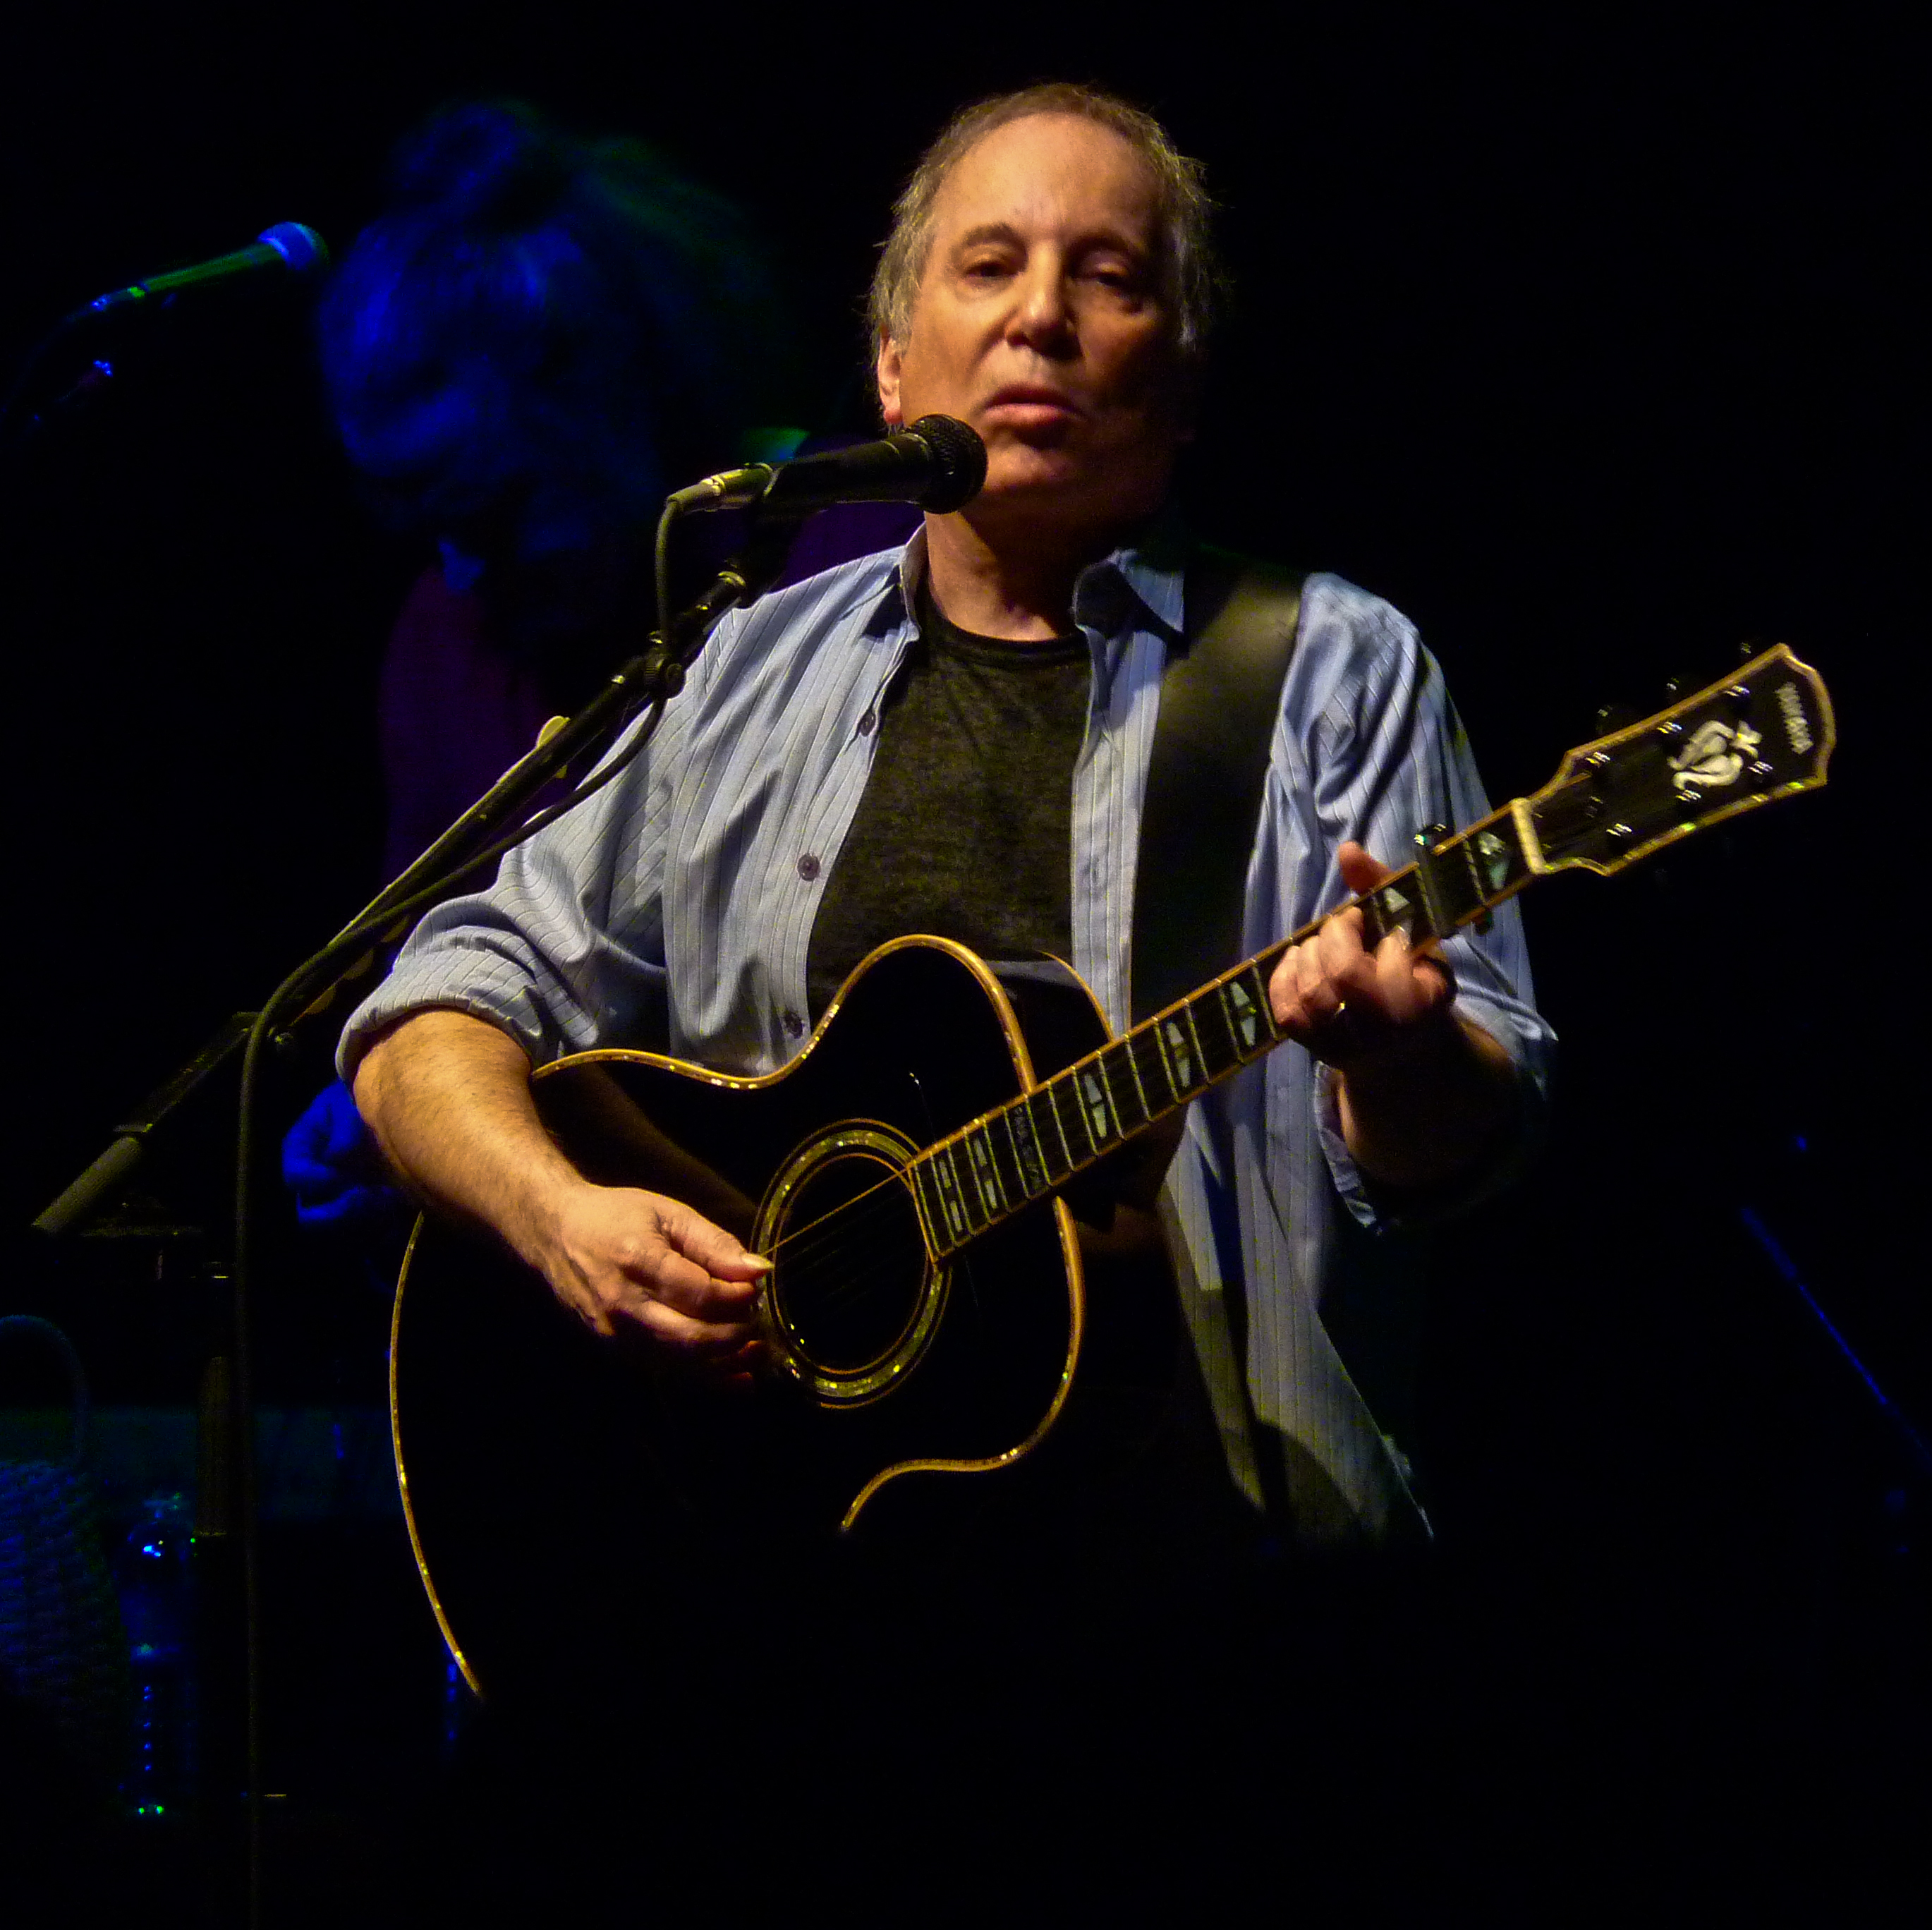 99 Miles From La Art Garfunkel paul simon - wikipedia